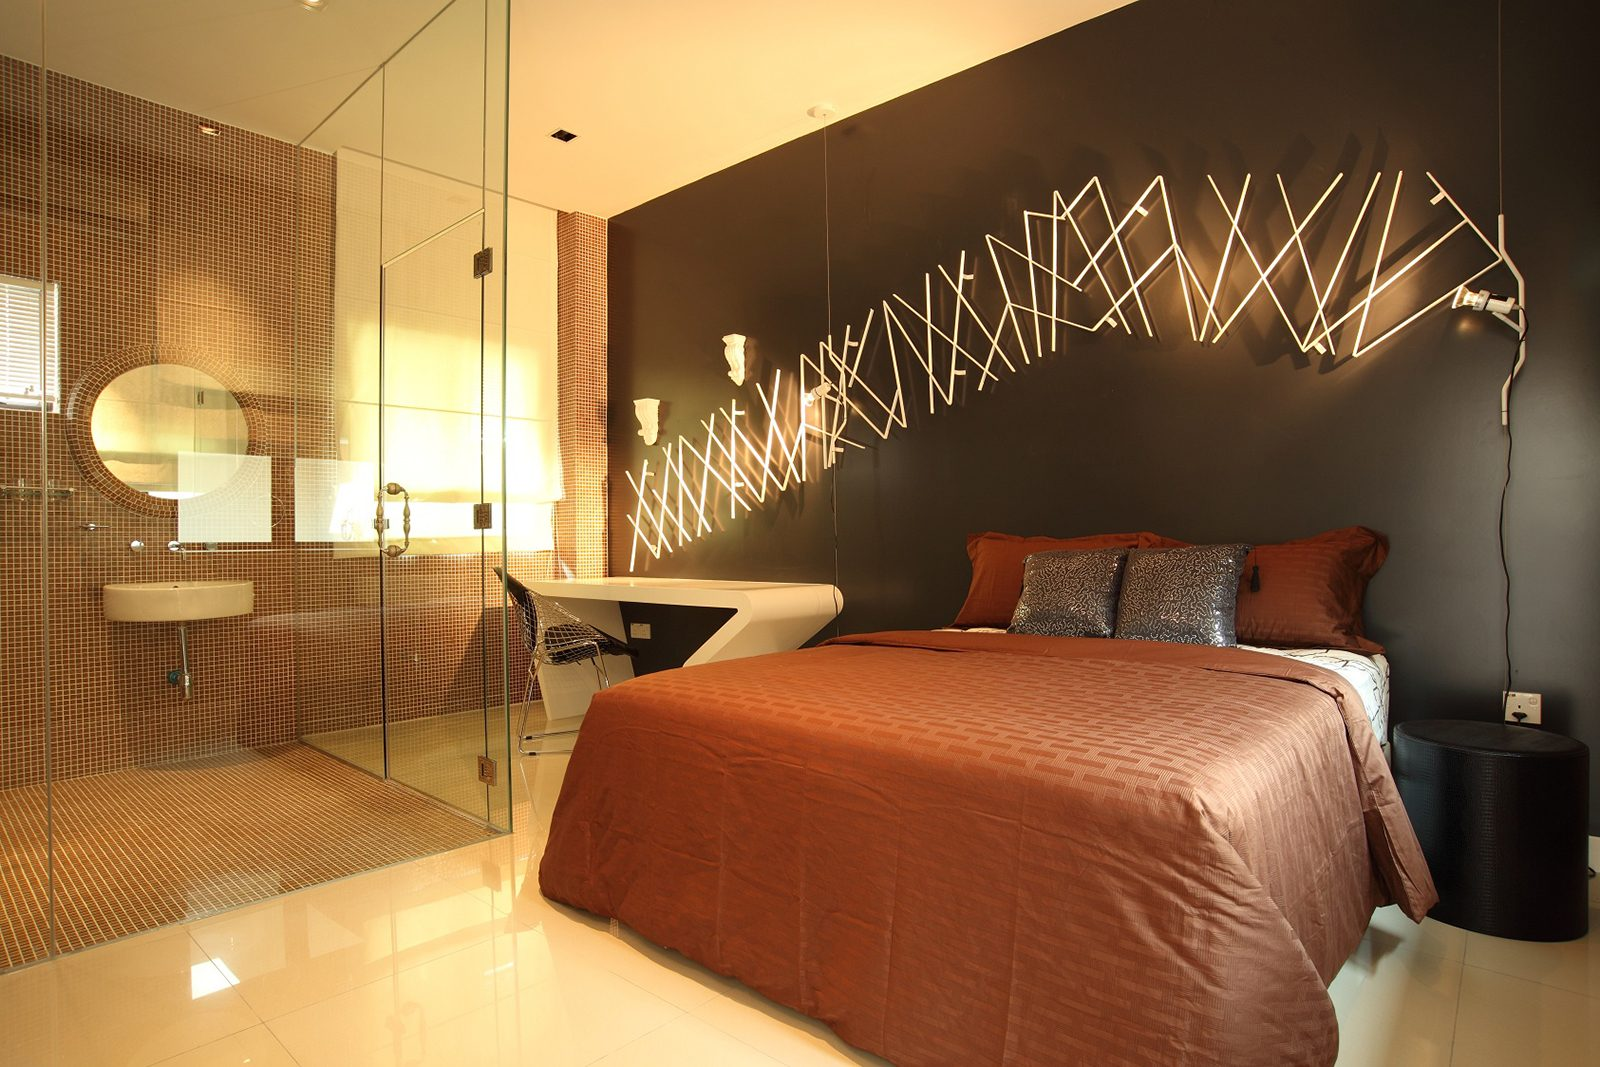 Modern bedroom with see-through shower in this bungalow in Desa Park City